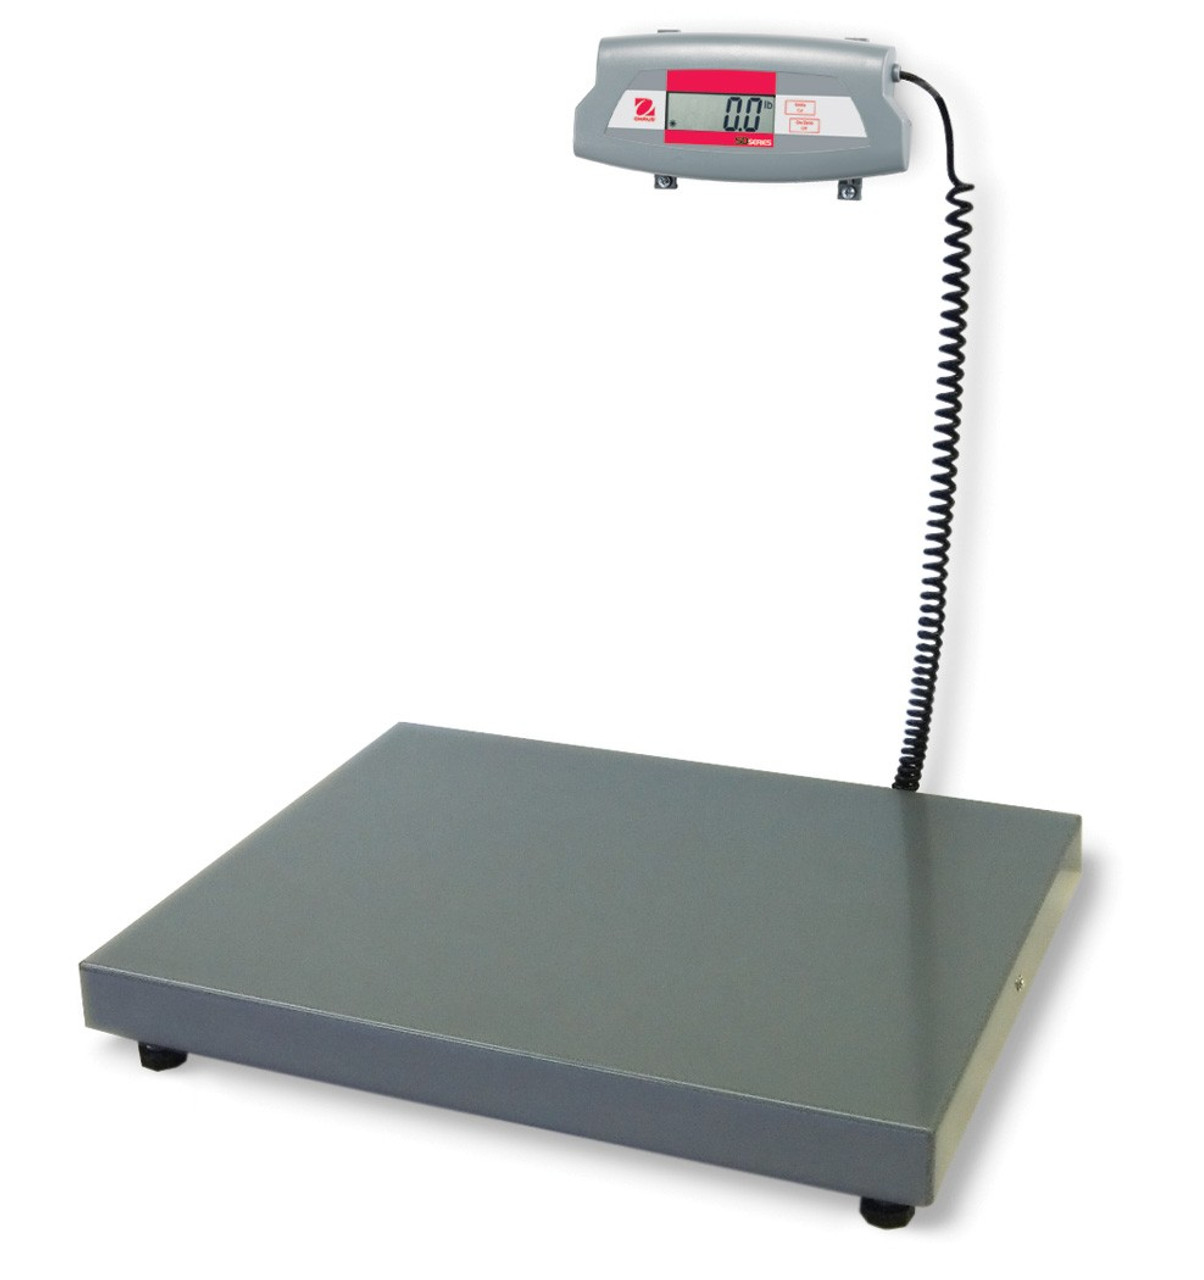 SD35 SD Series Shipping Scale 77 lb x 0.05 lb